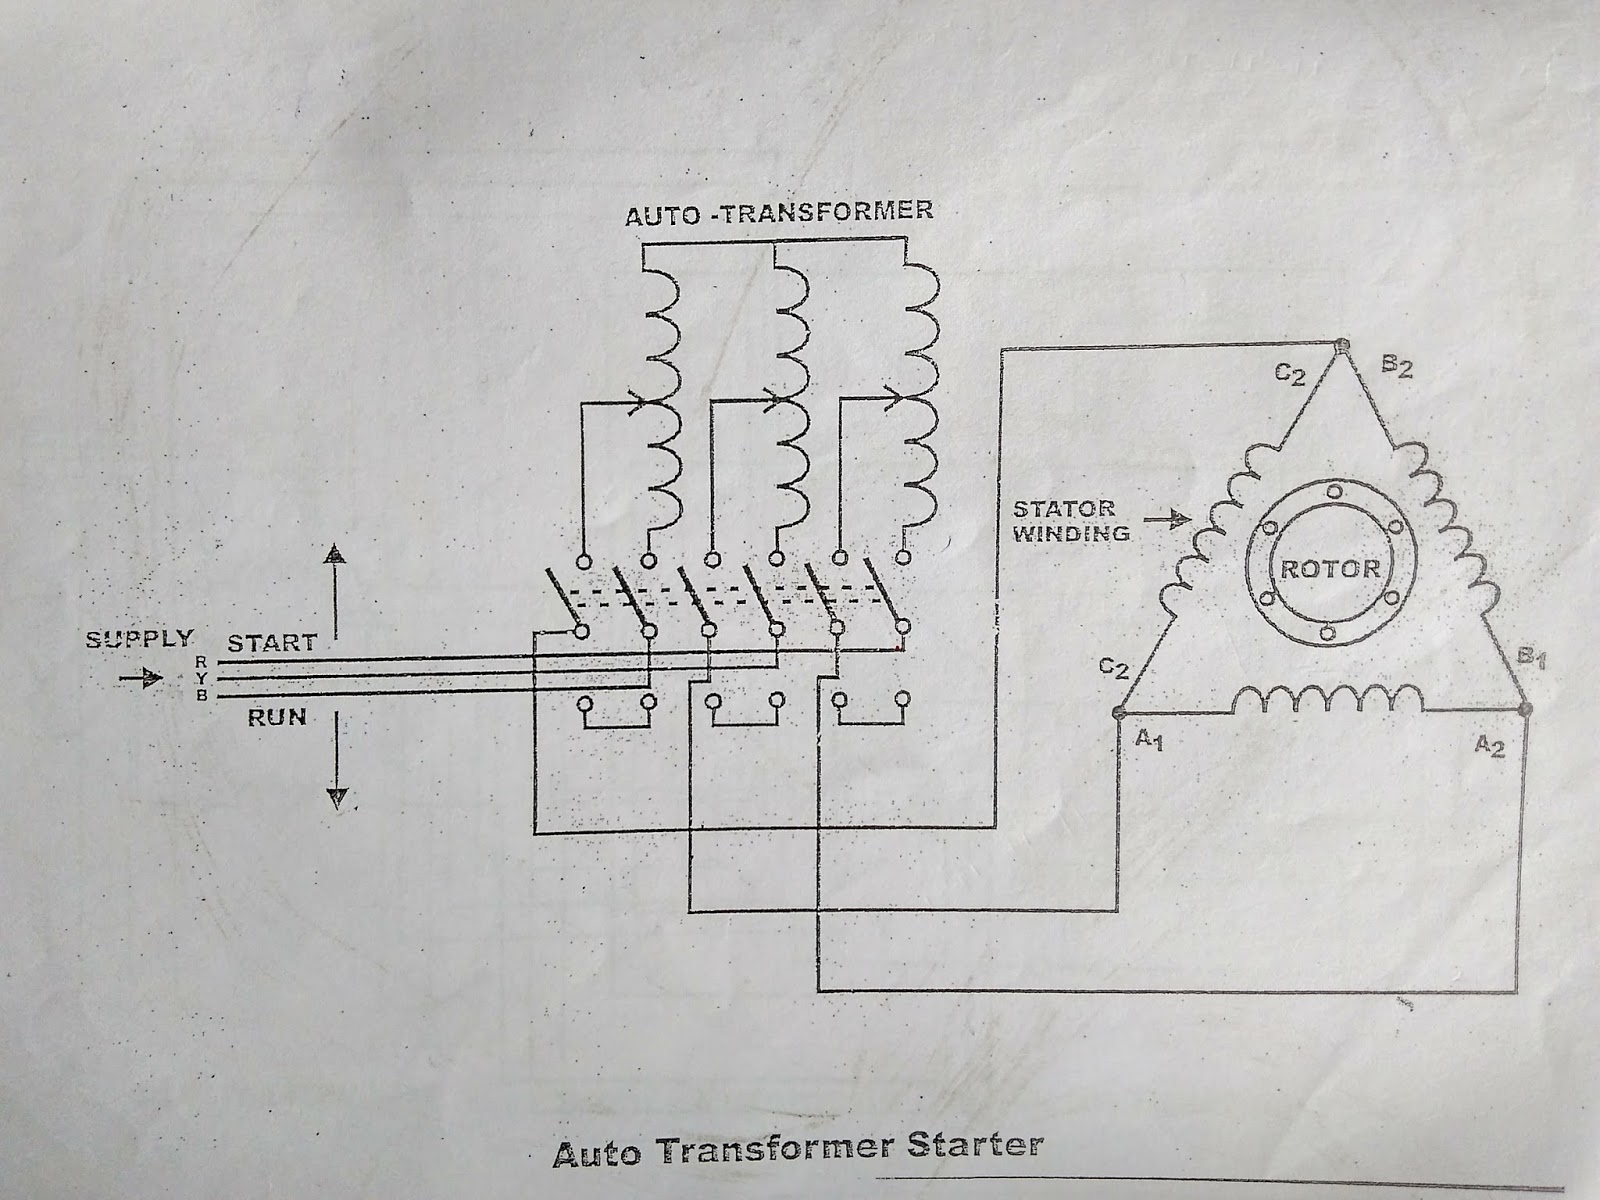 Autotransformer Starter Working Wiring And Control Diagram Of Star Delta With Timer